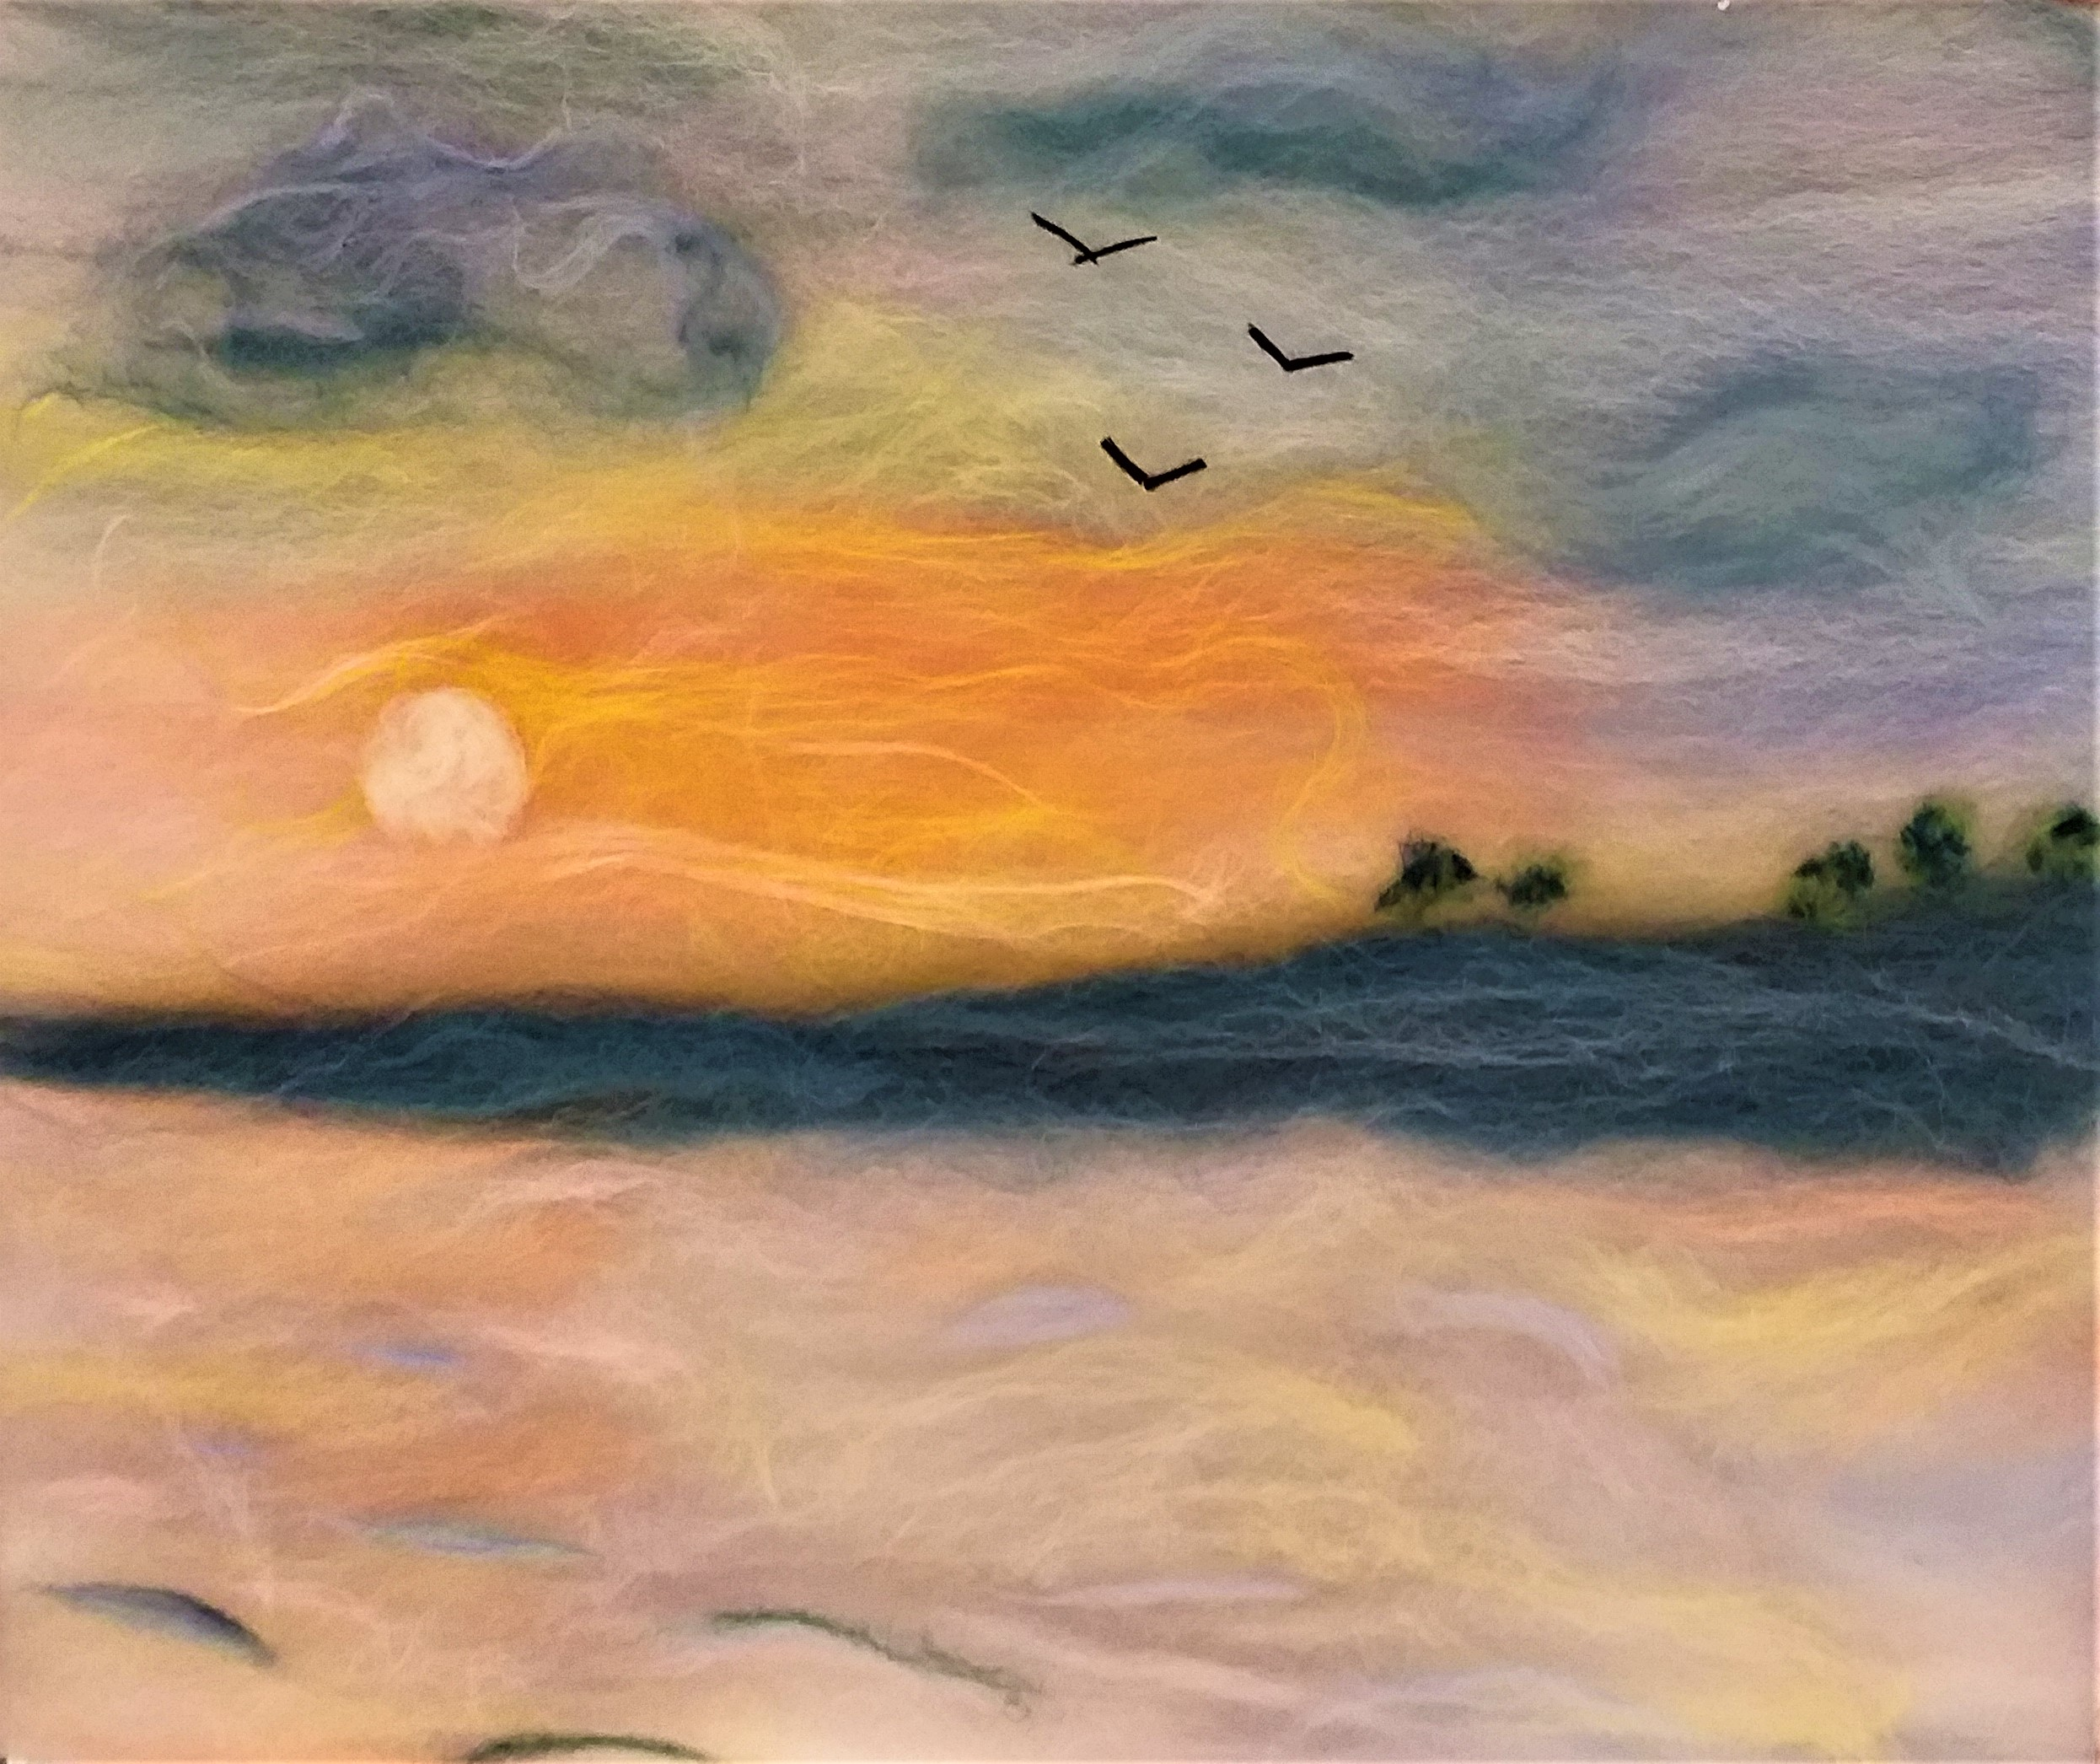 'Sunset wool painting' student's work created at Art Textiles course in Cotswolds with Raya Brown